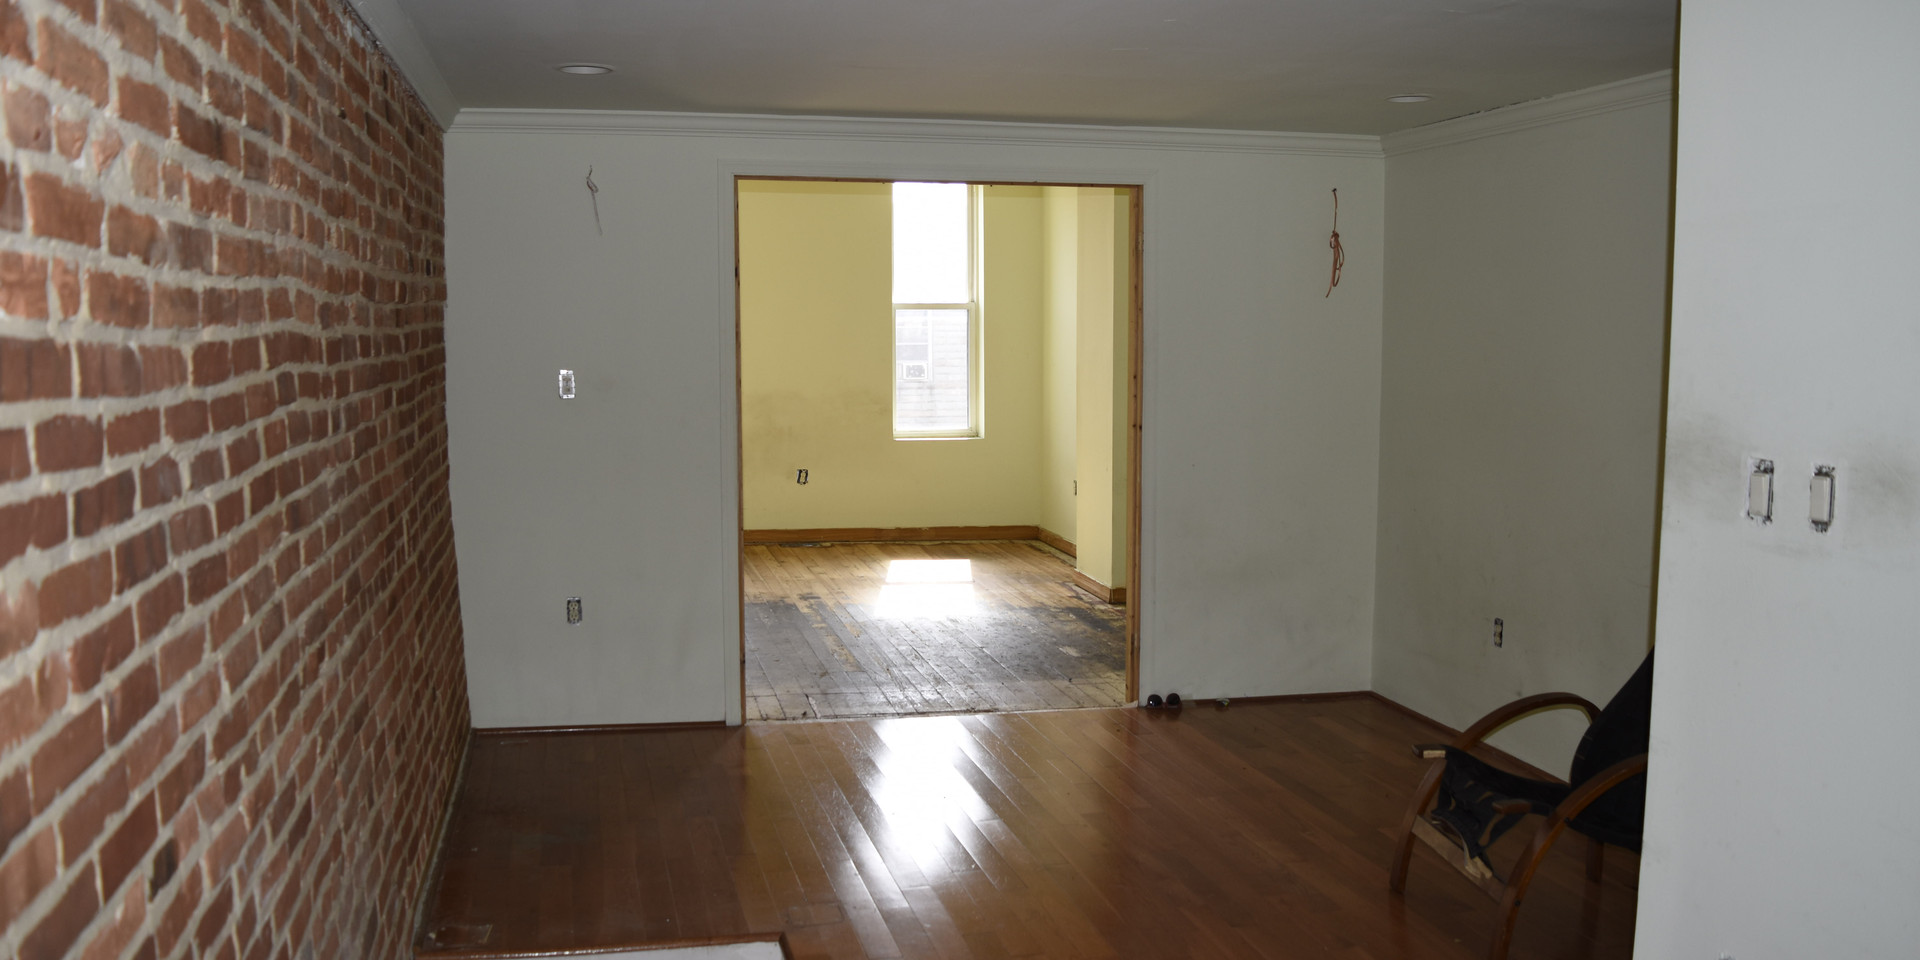 5.0 Second Level Bedroom Potential.JPG